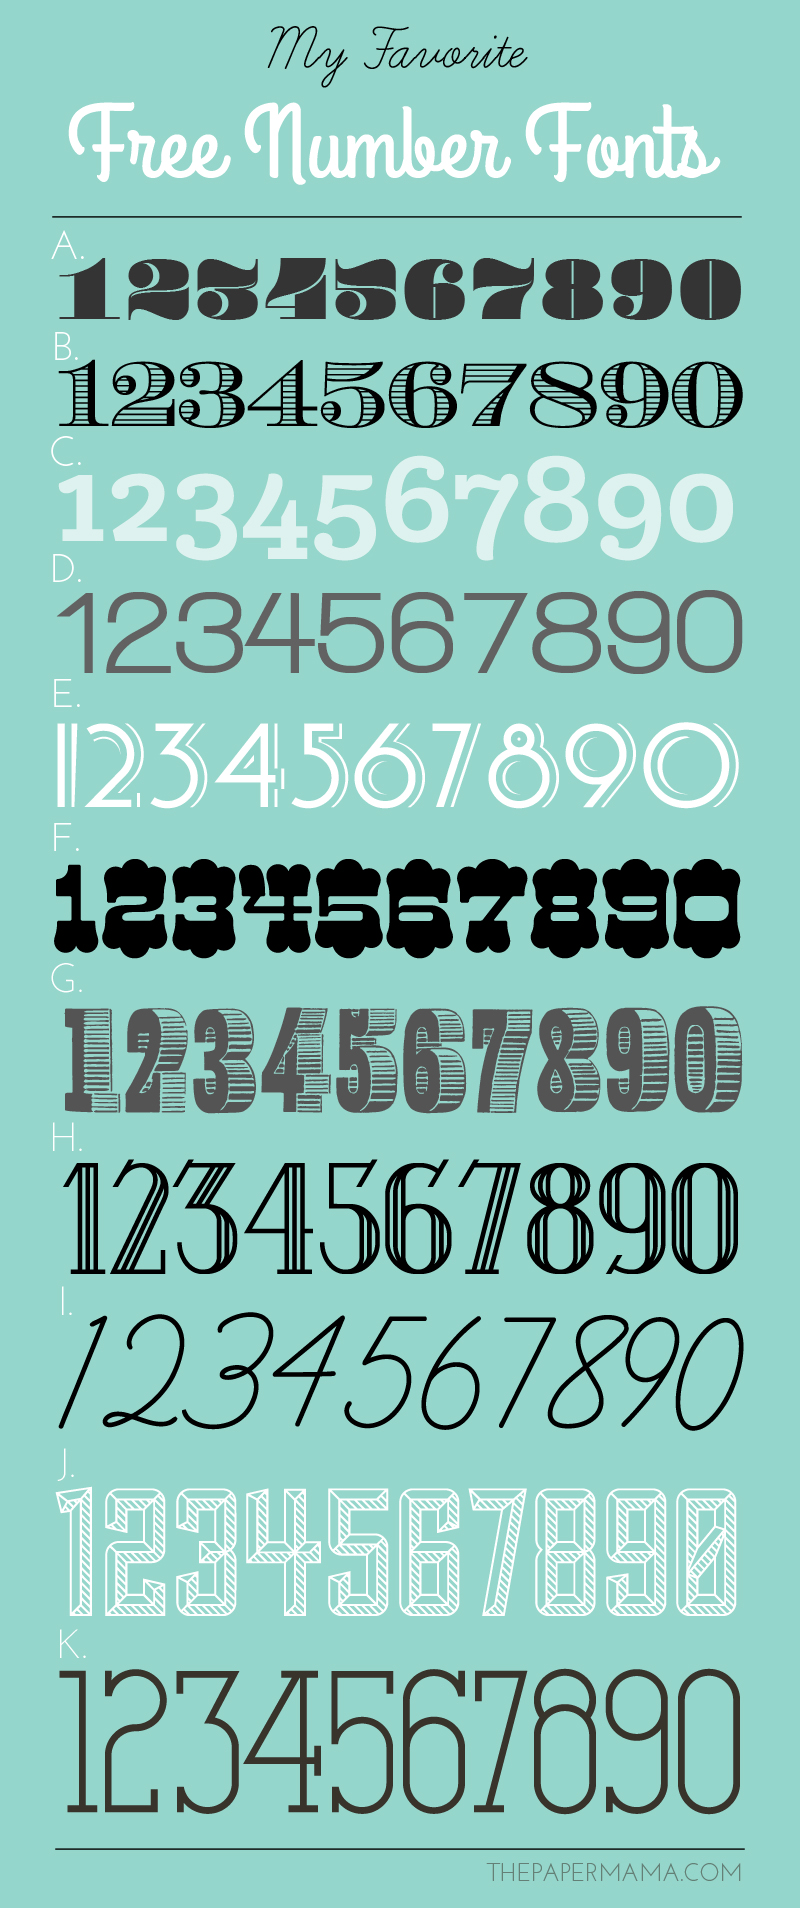 my favorite free number fonts